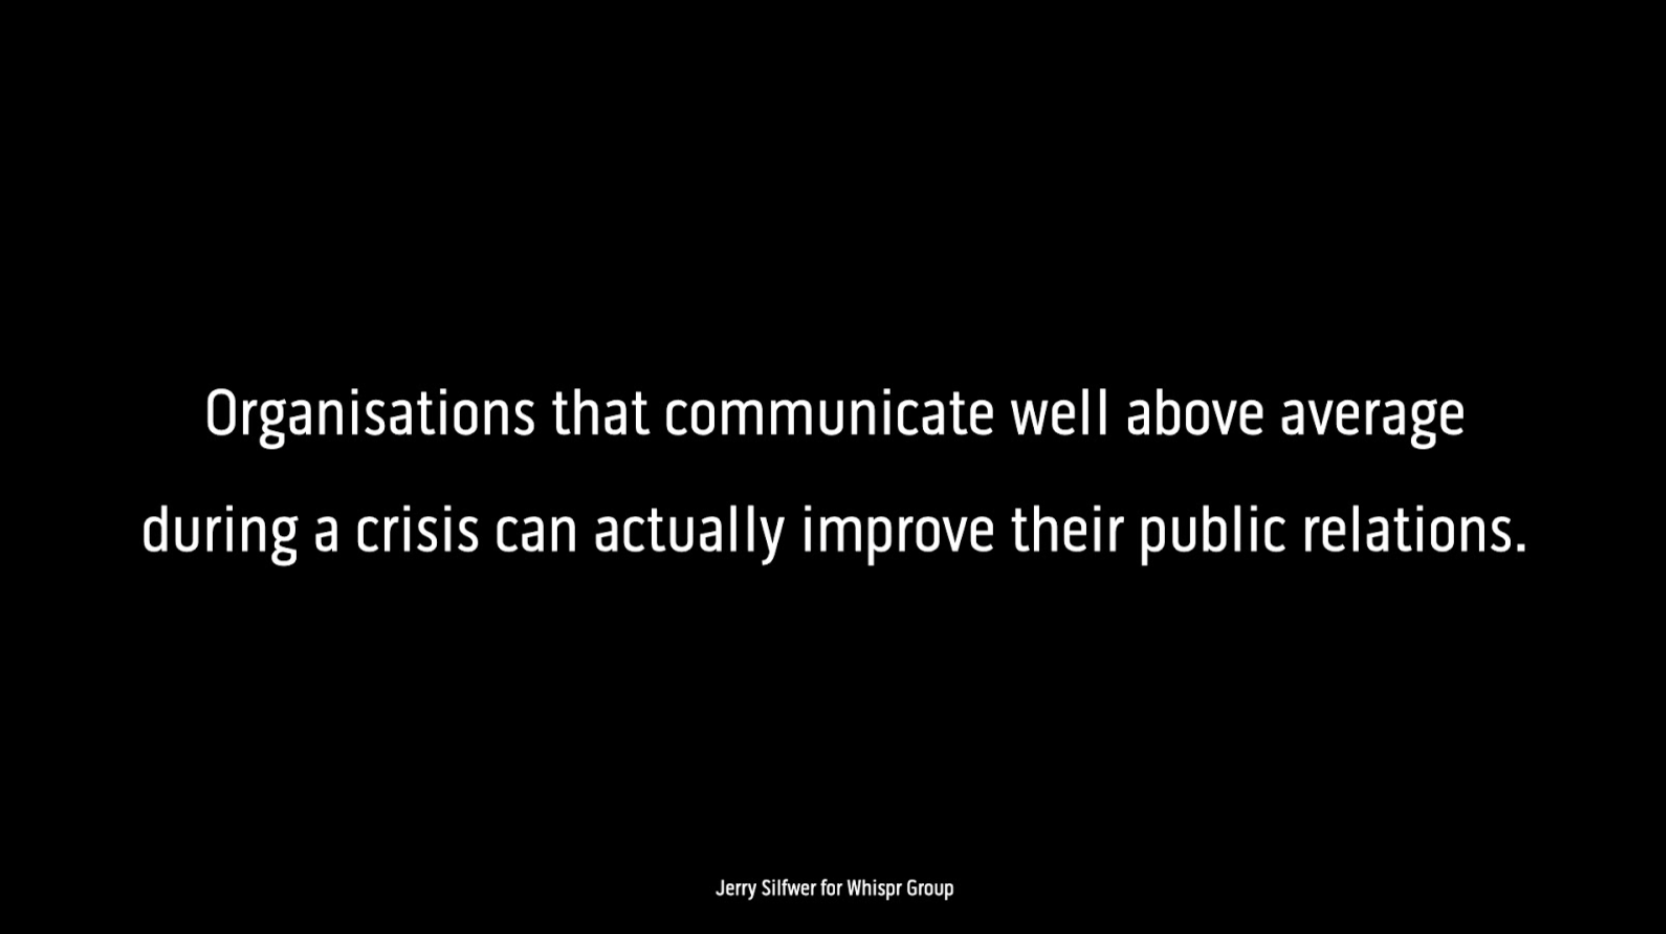 Whispr Group Communication Insights & Strategy